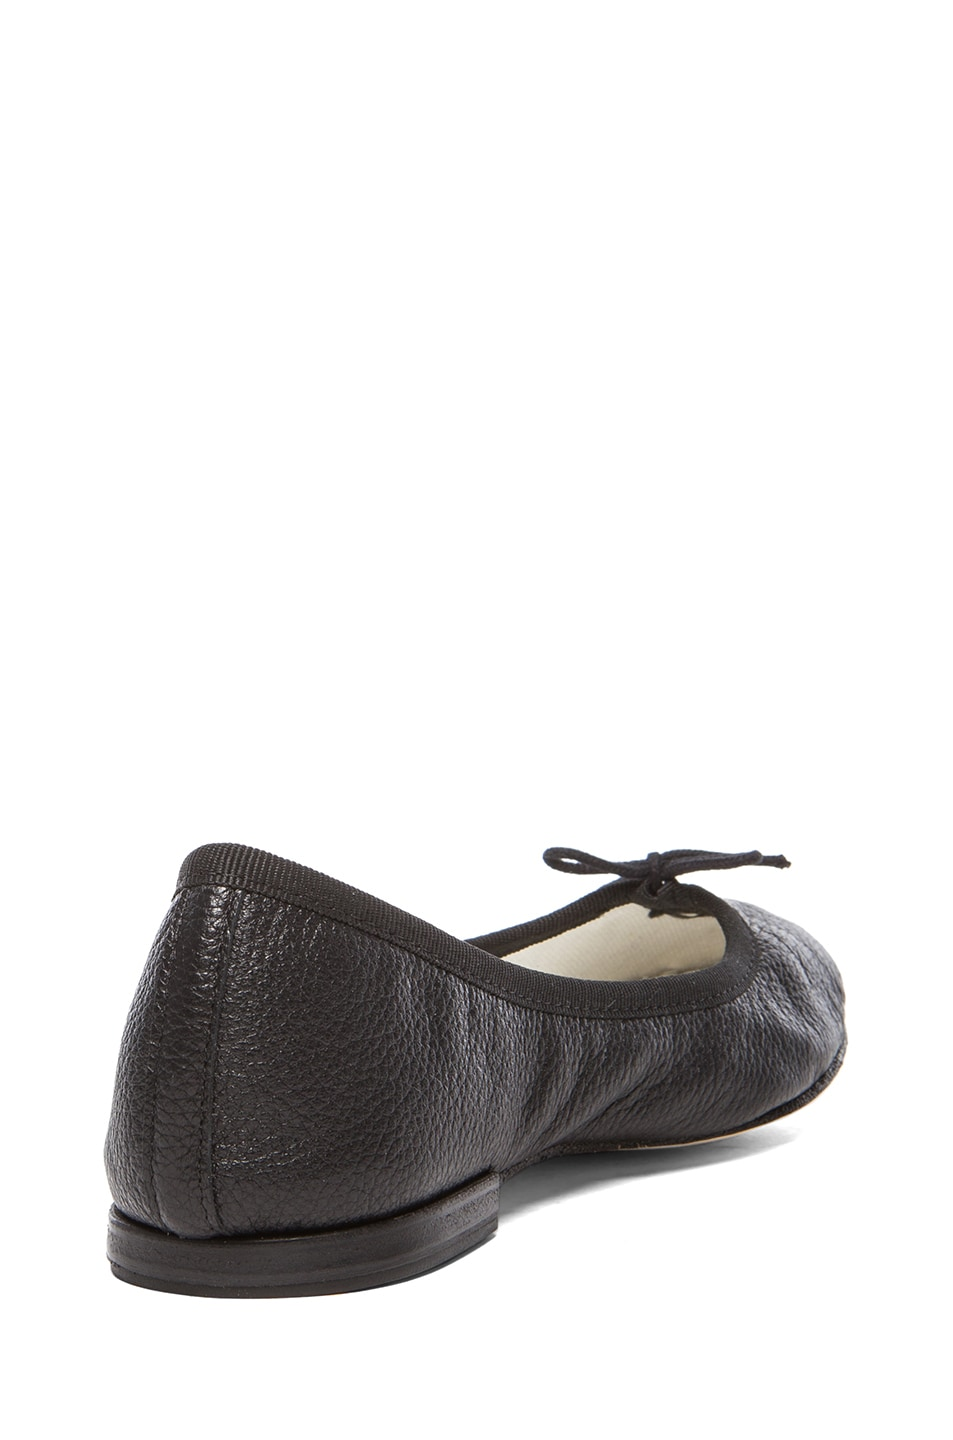 Image 3 of Repetto Goatskin Leather Flats in Black